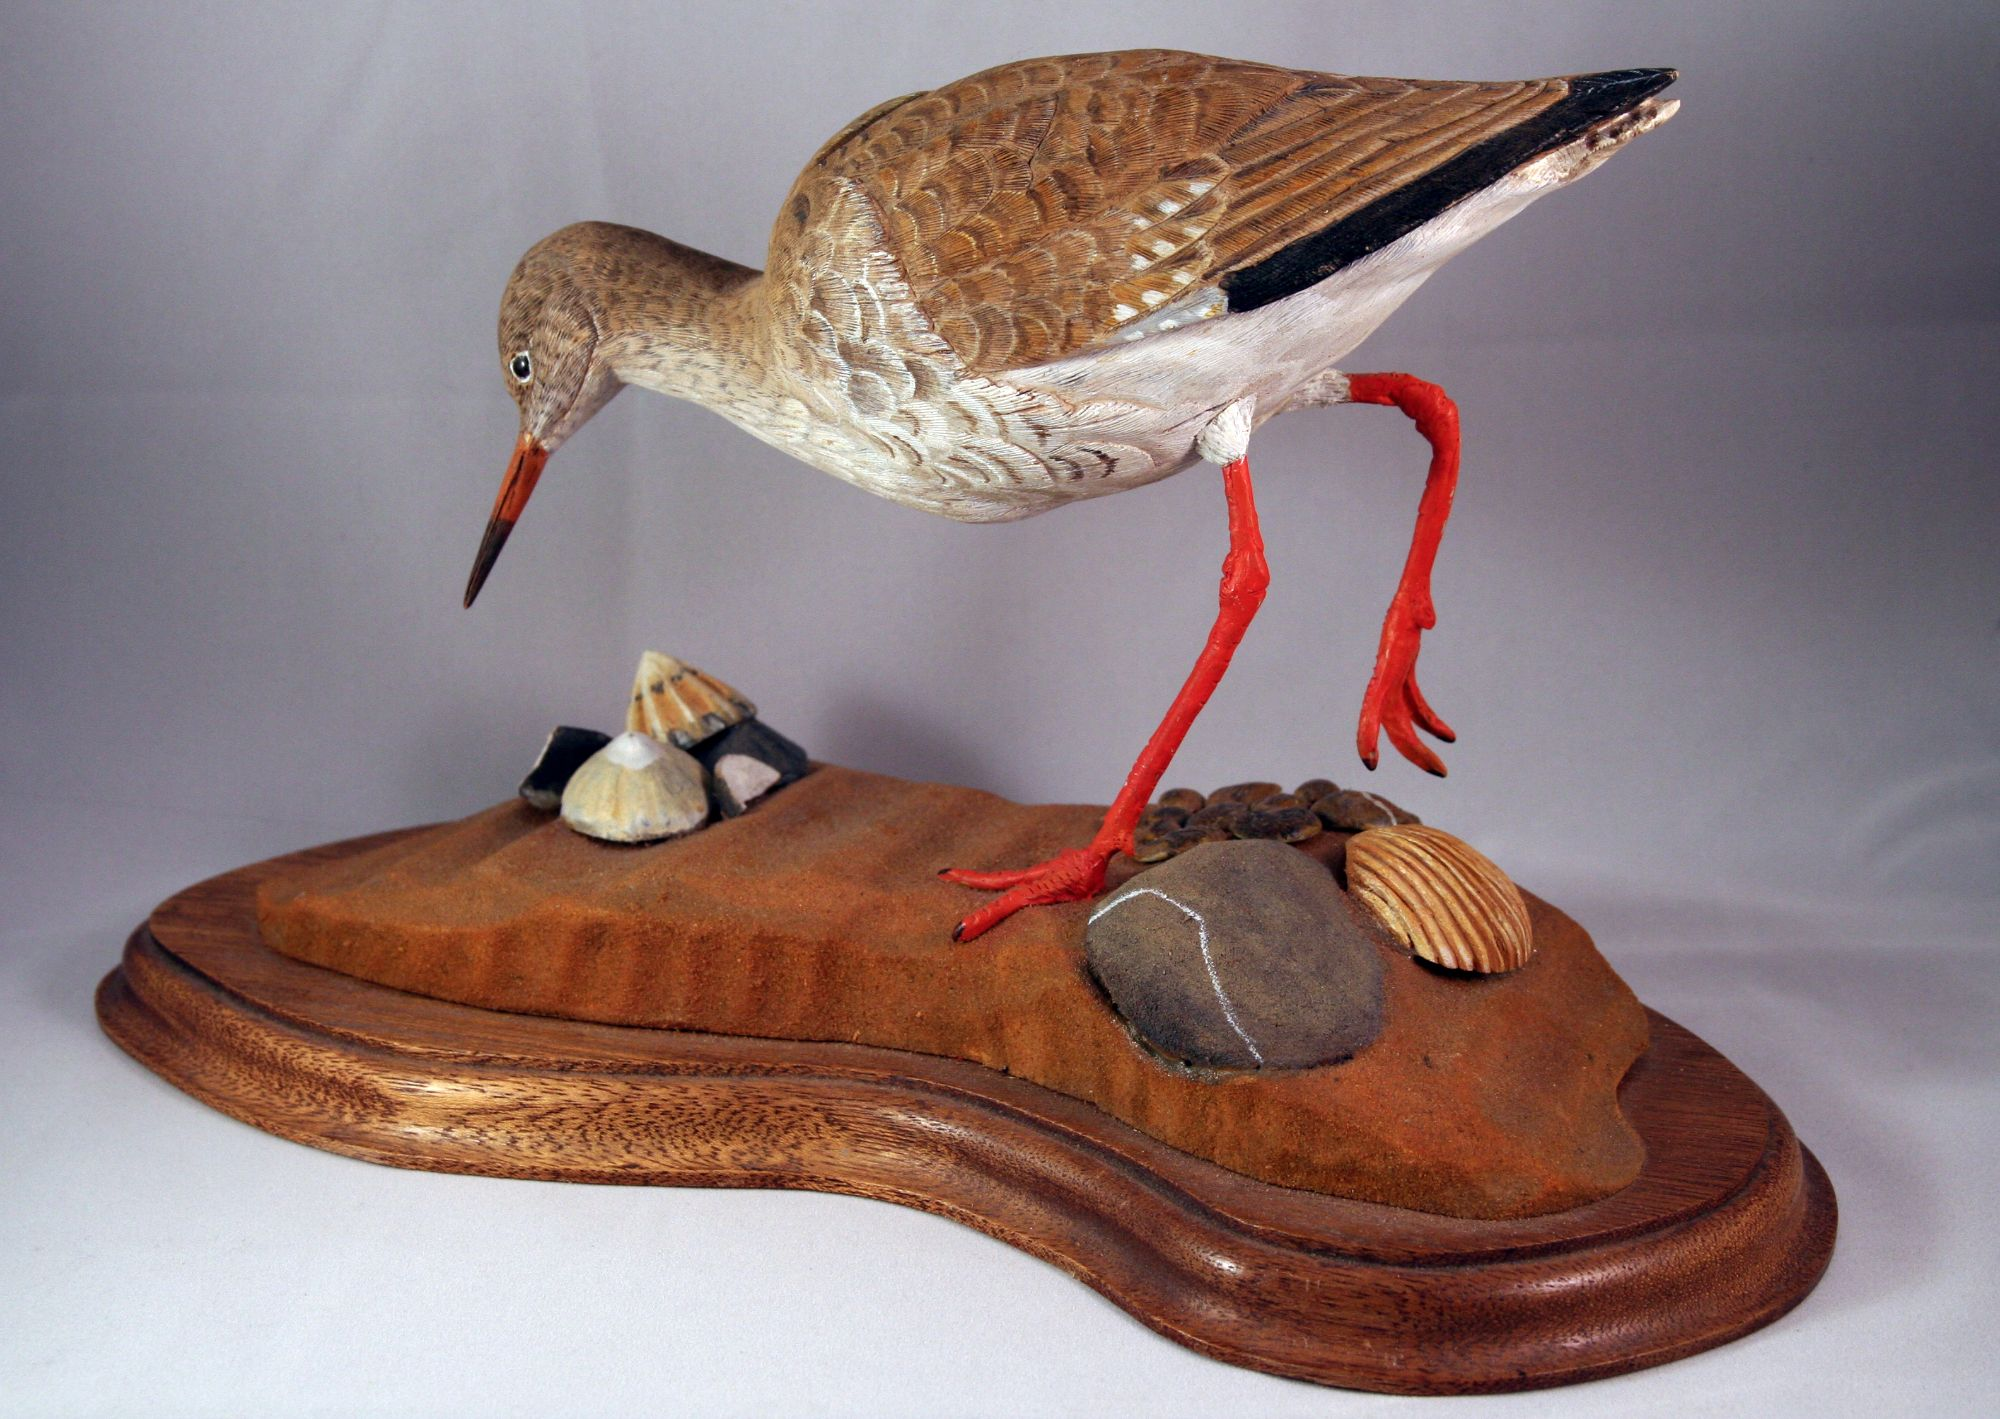 Redshank with carved pebbles and shells